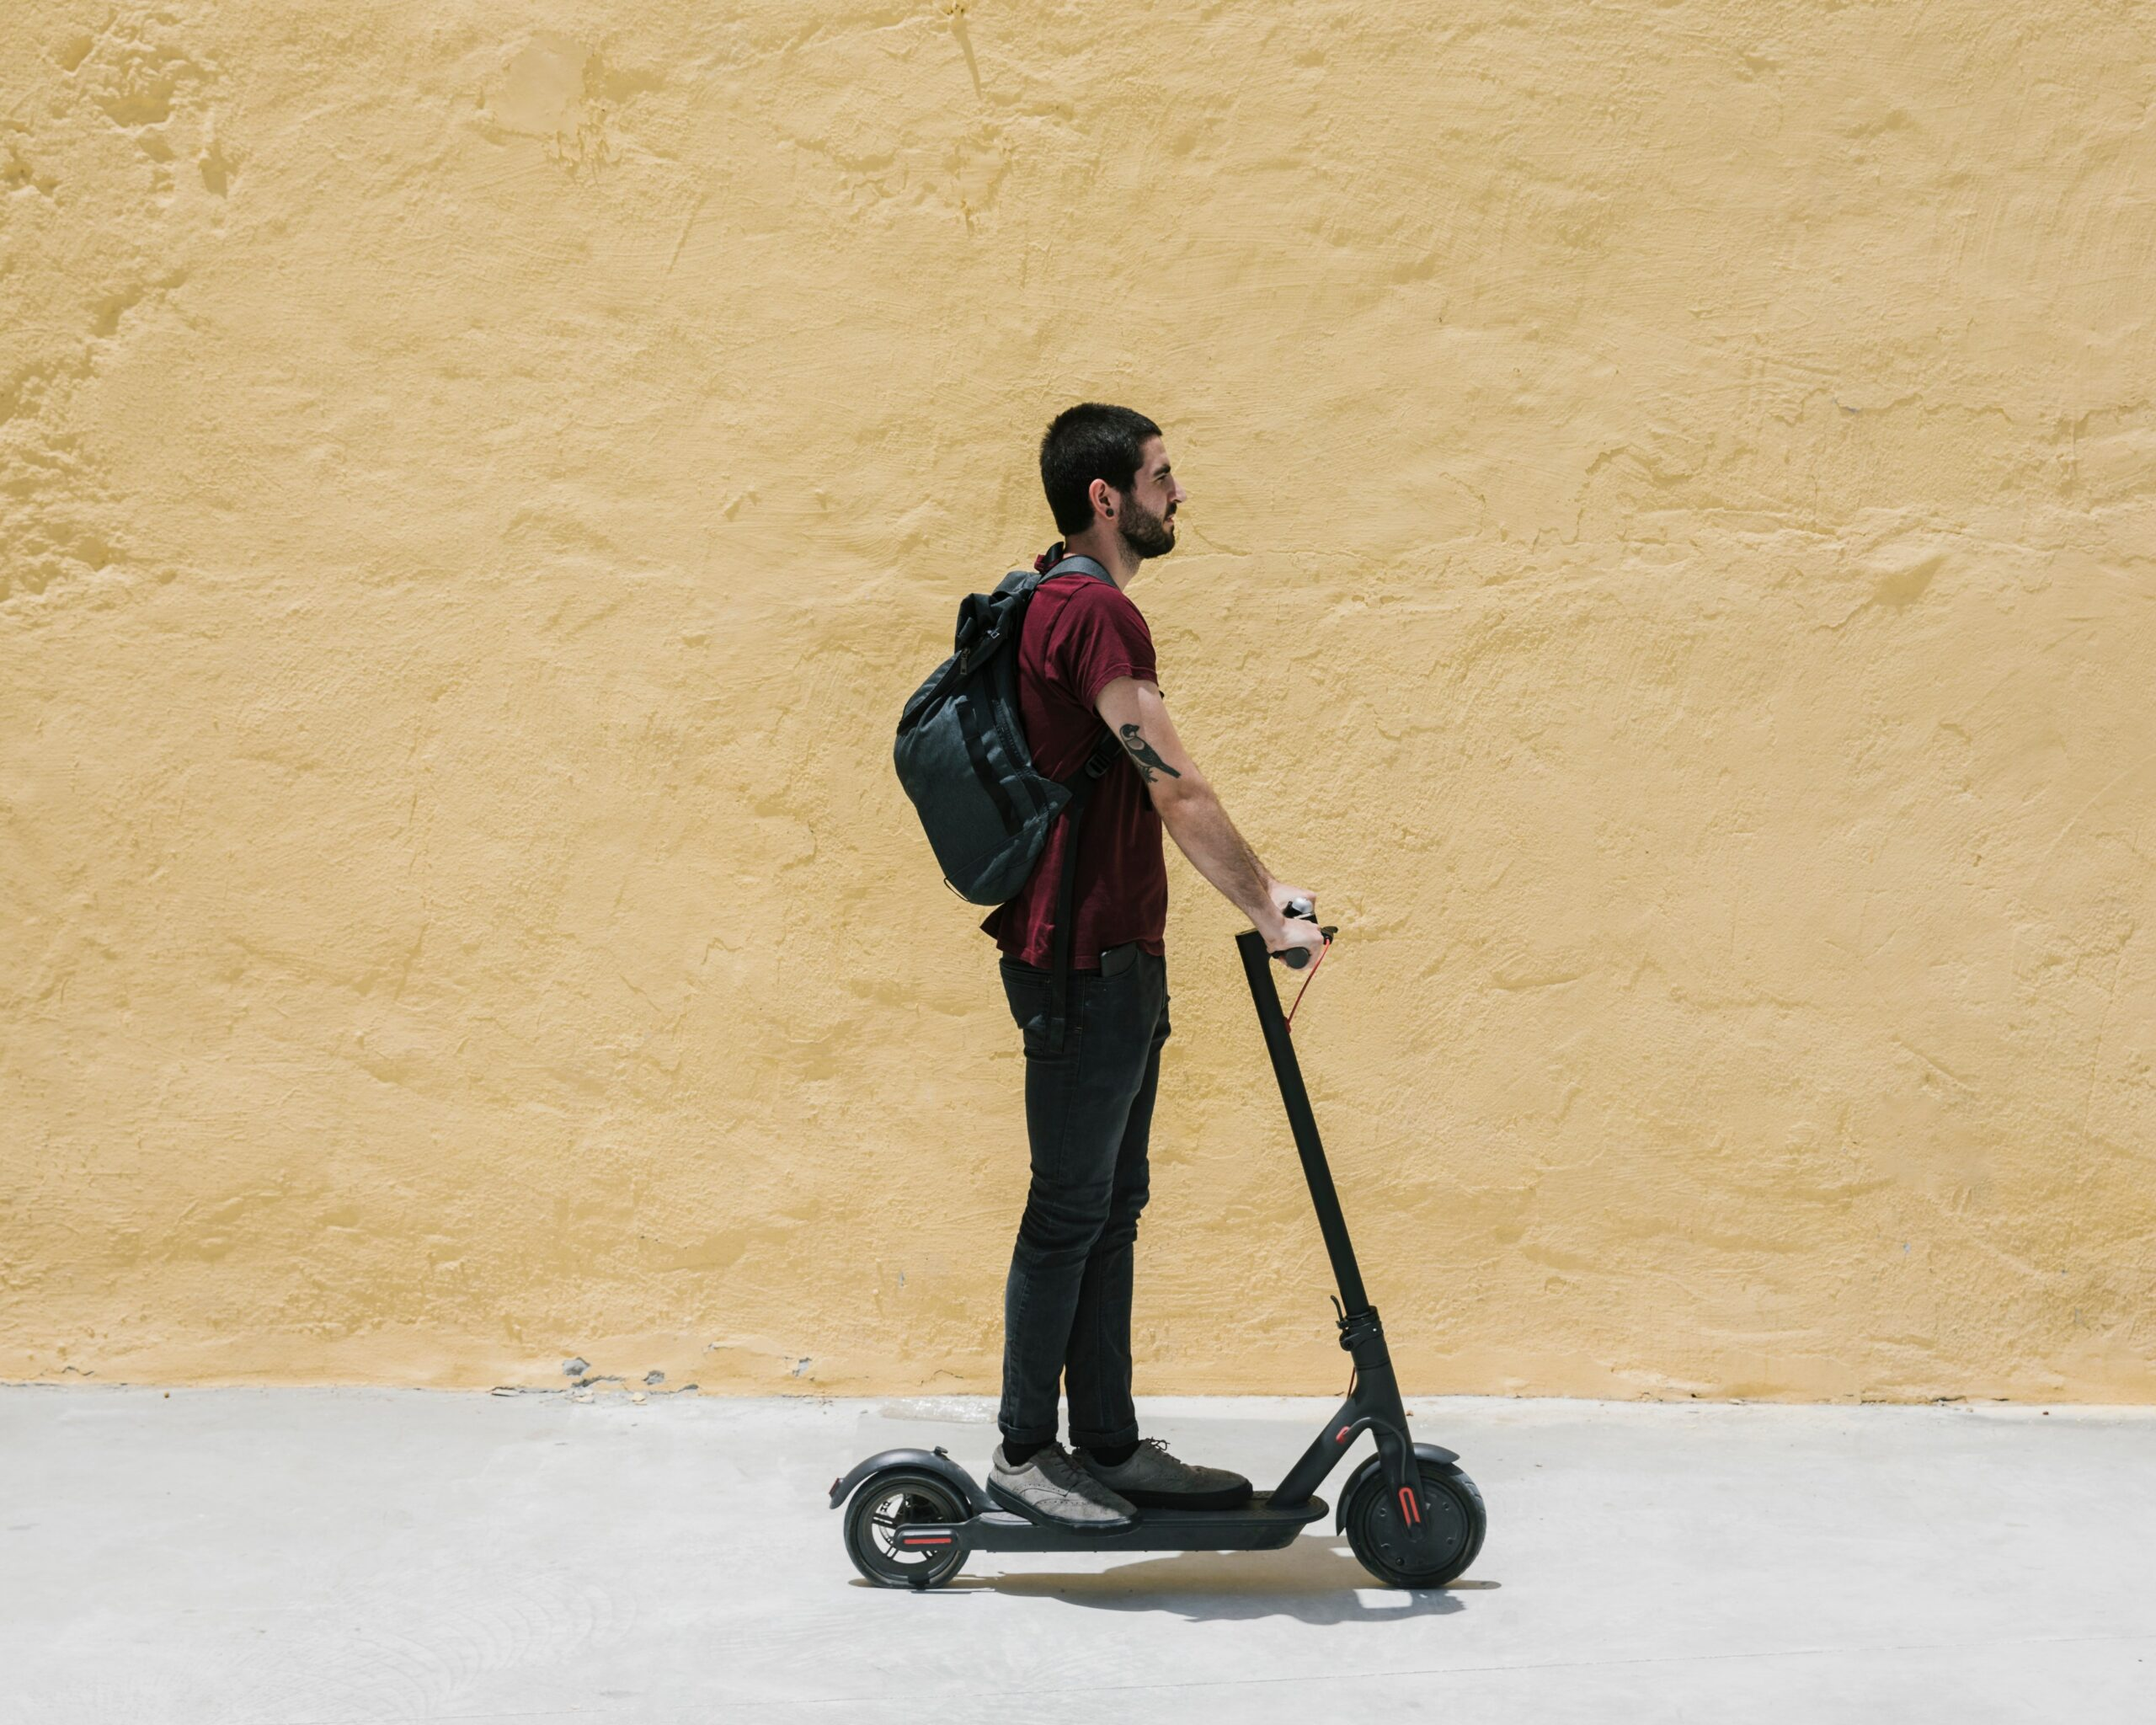 4 Reasons to Use an Electric Scooter Even After COVID